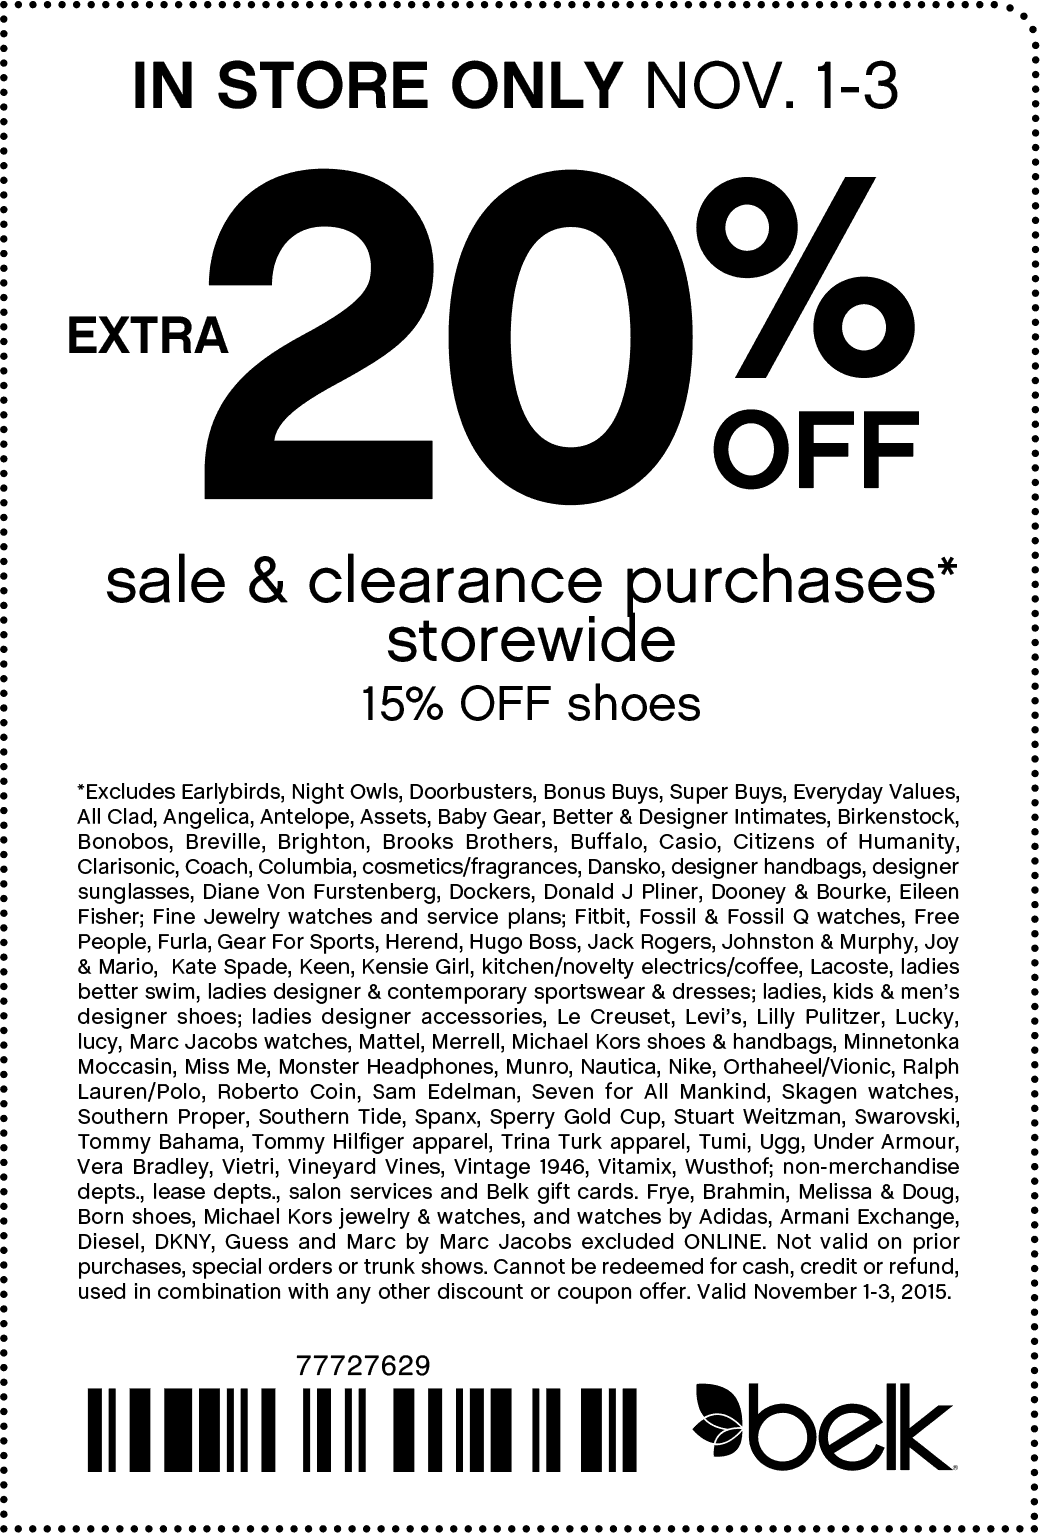 Belk Coupon March 2018 Extra 20% off sale & clearance at Belk